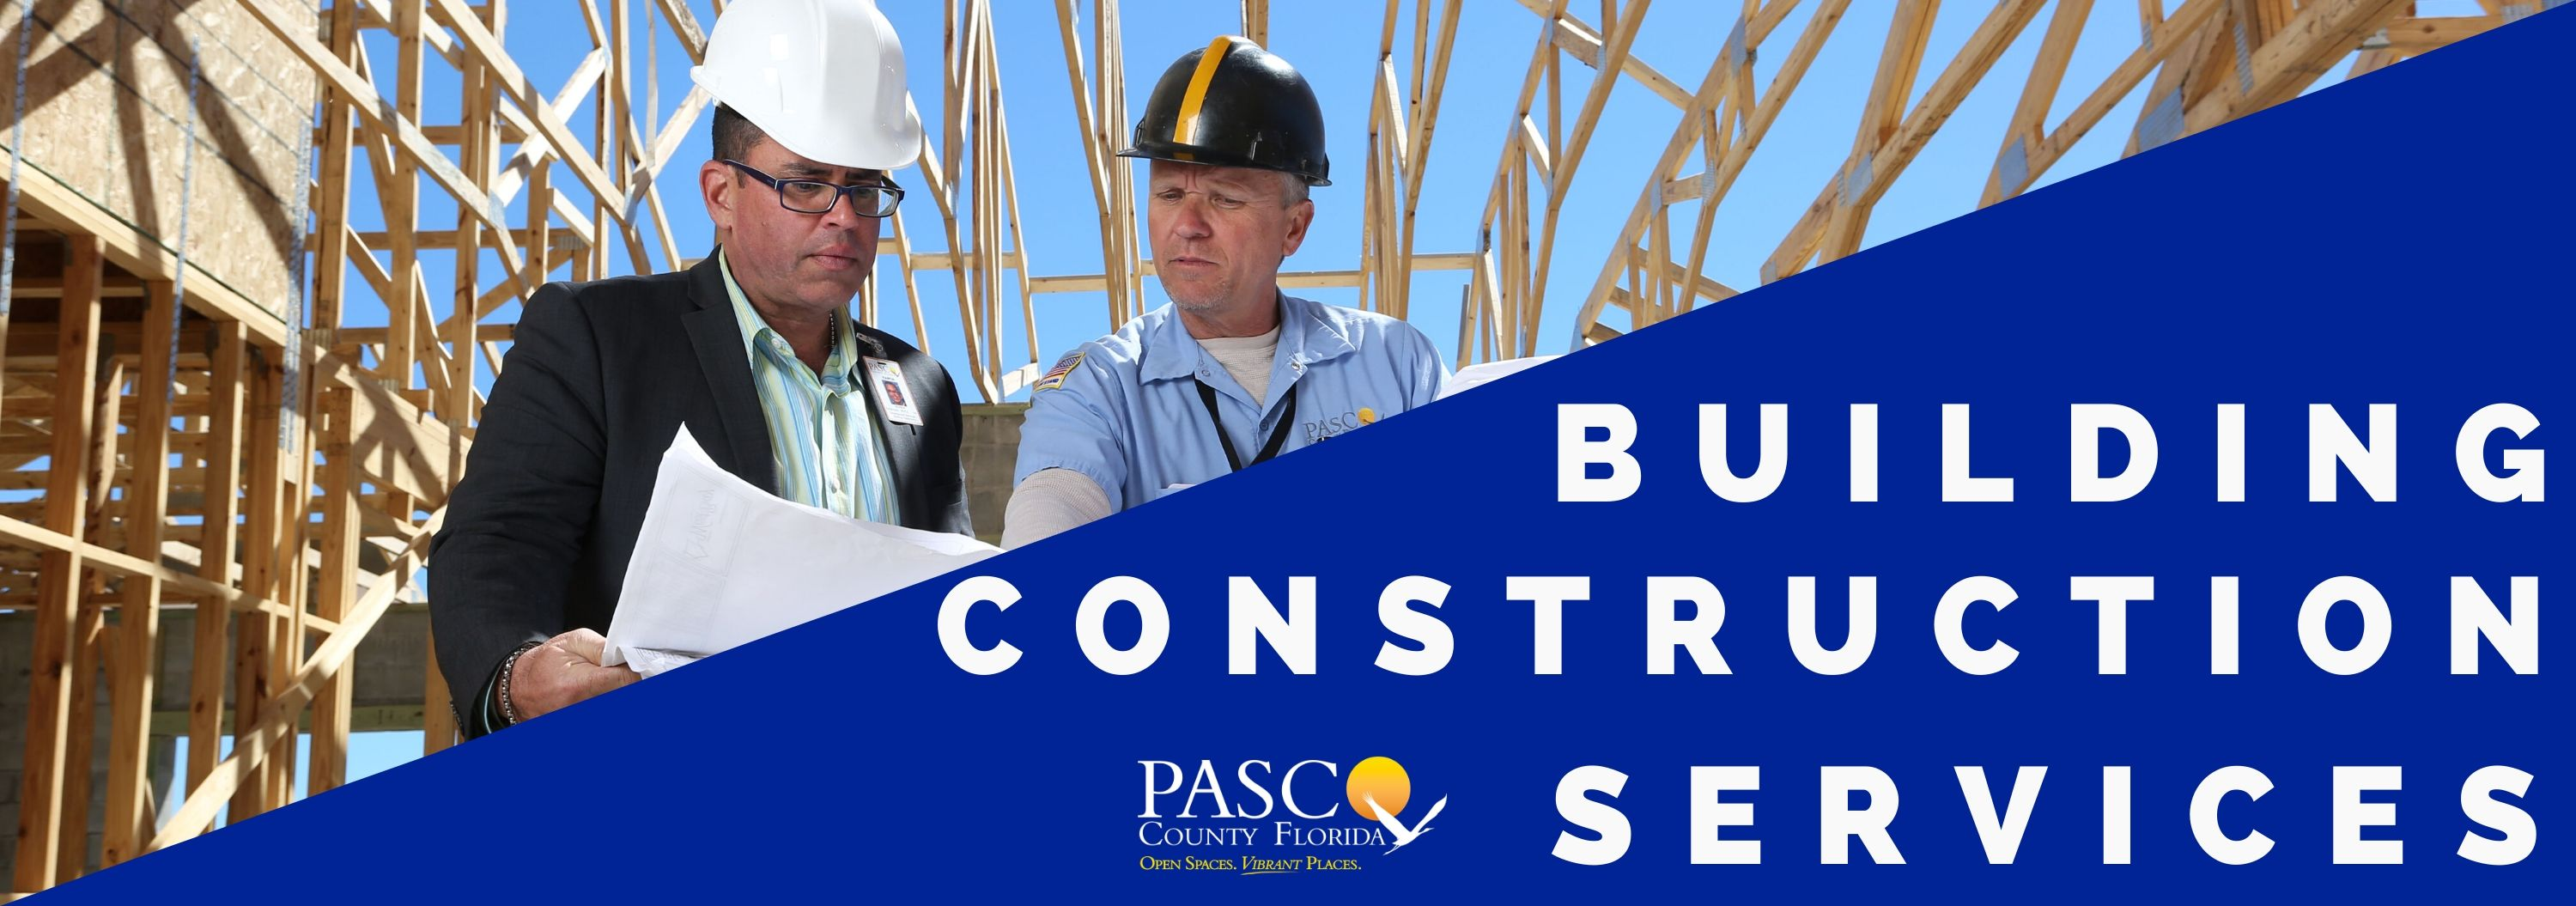 Building Construction Services banner